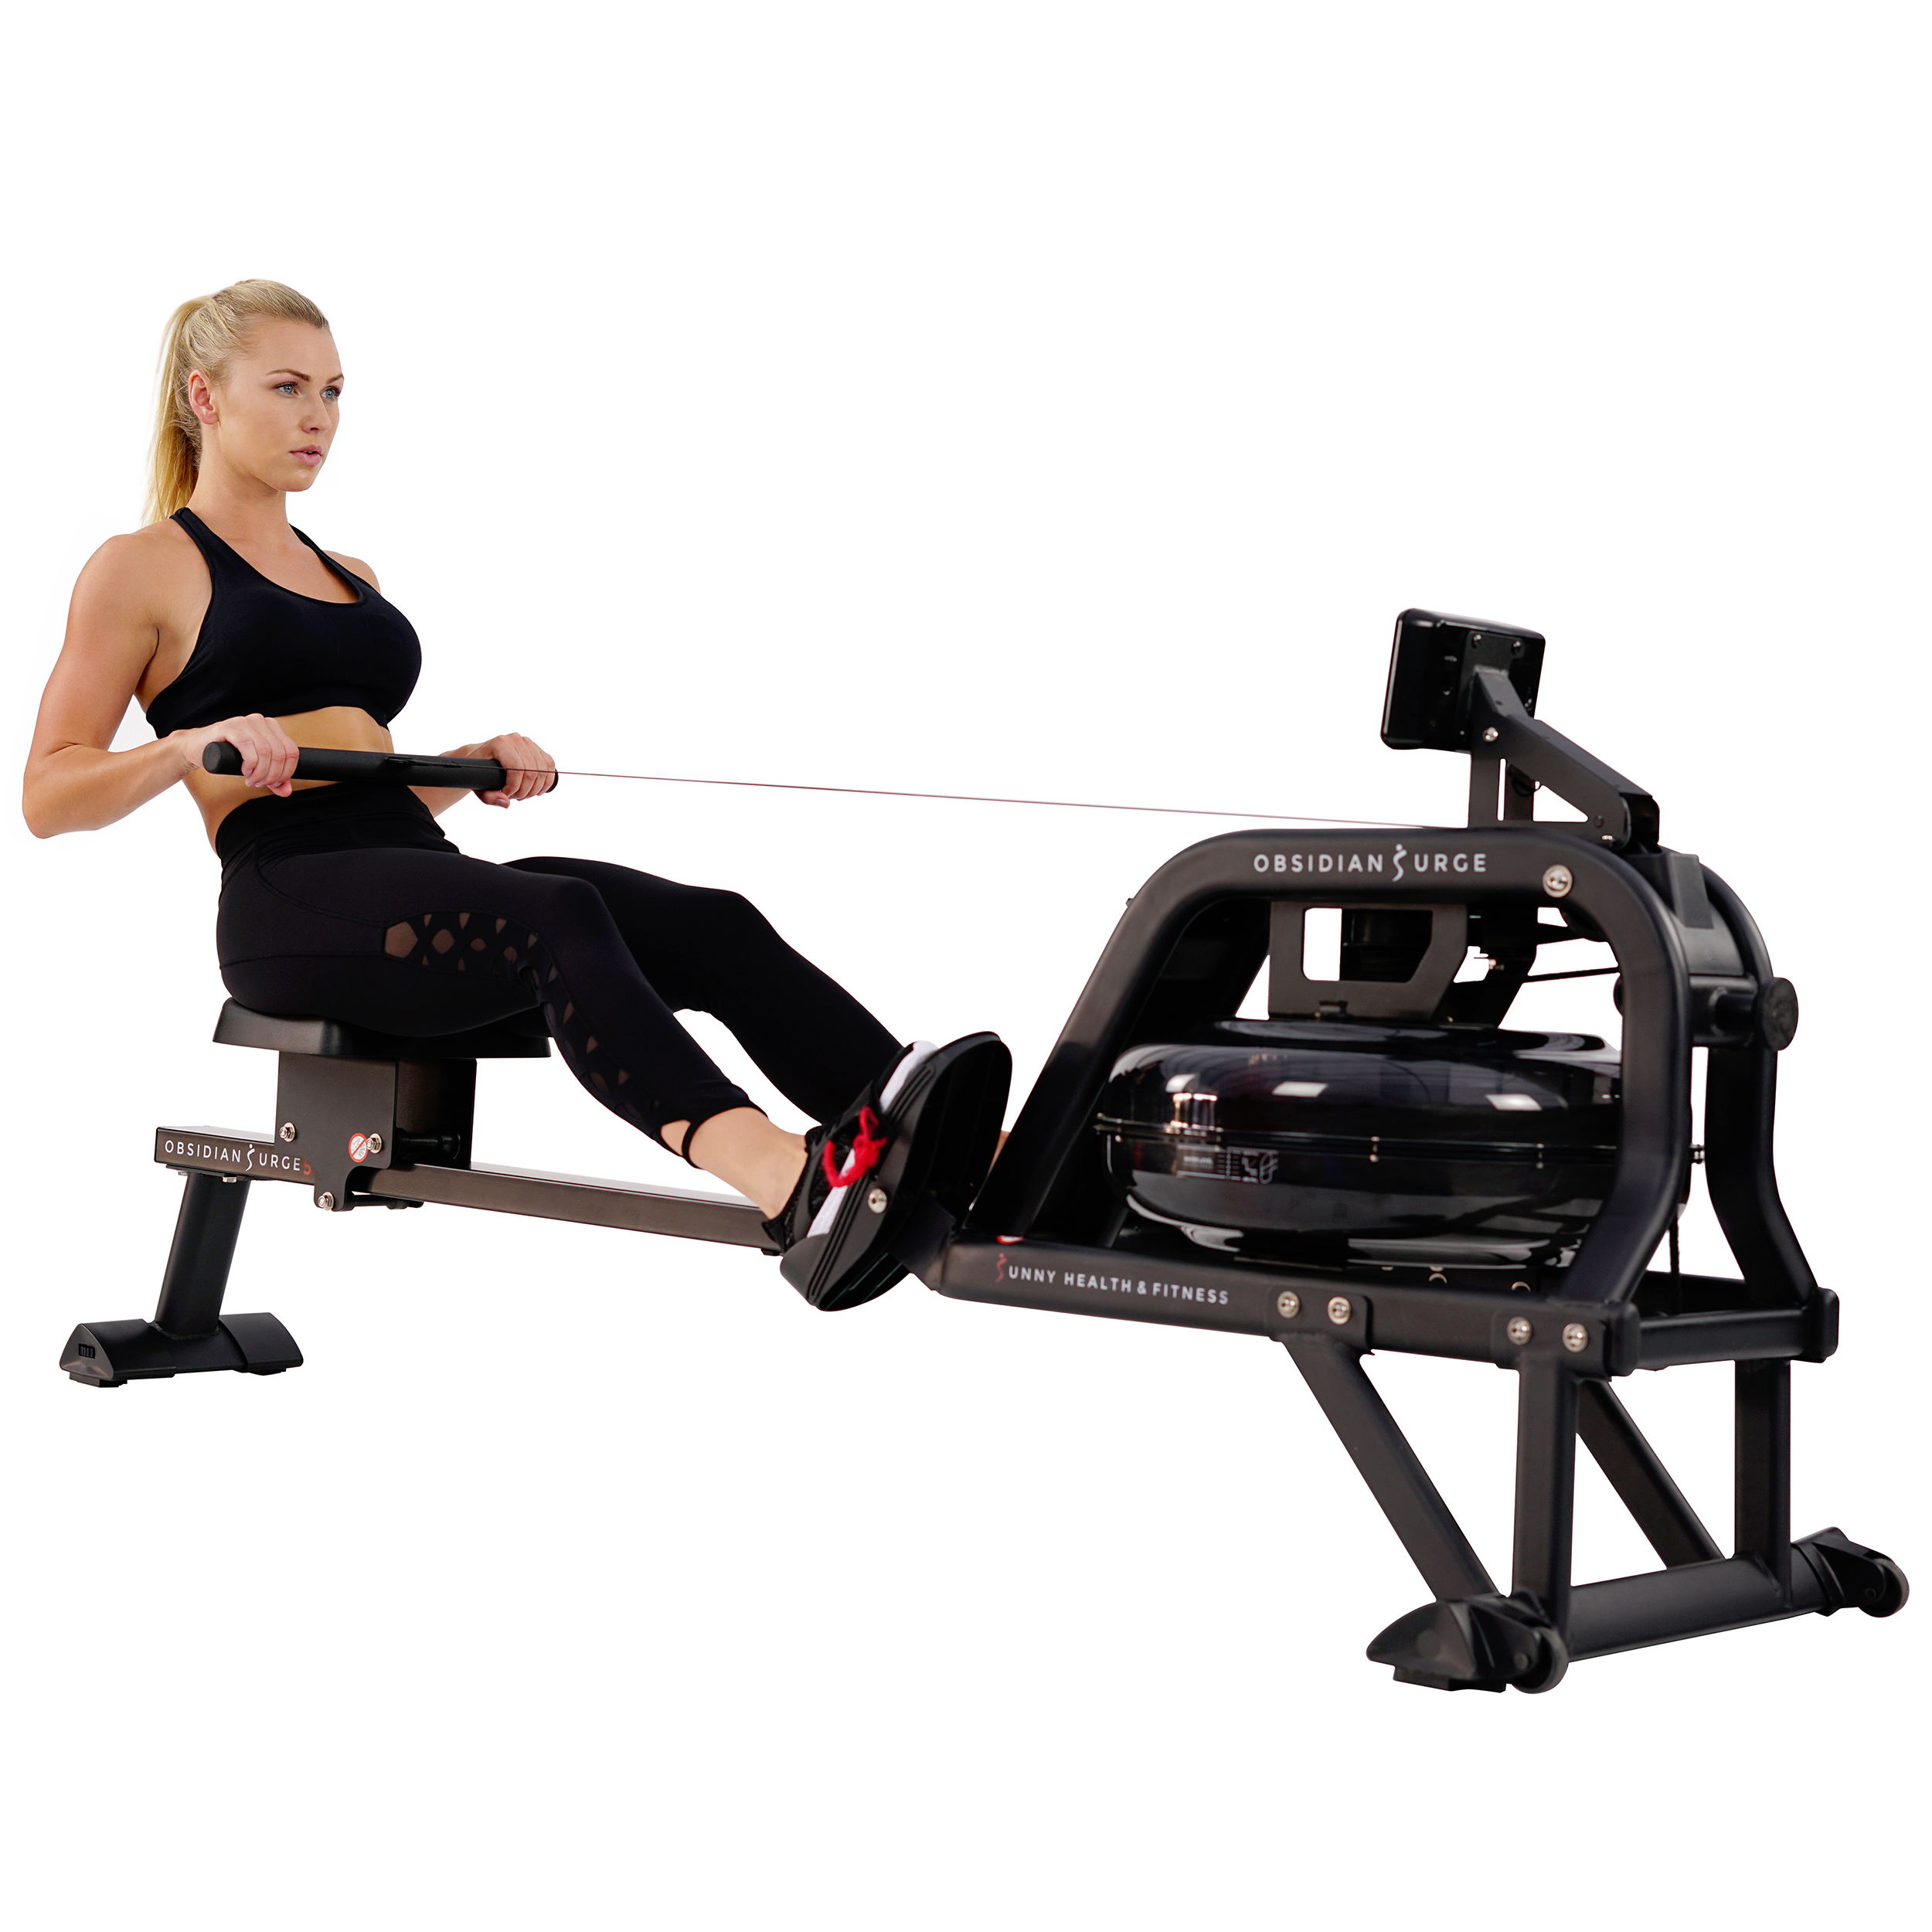 Sunny Health & Fitness Obsidian Surge Water Rowing Machine SF-RW5713